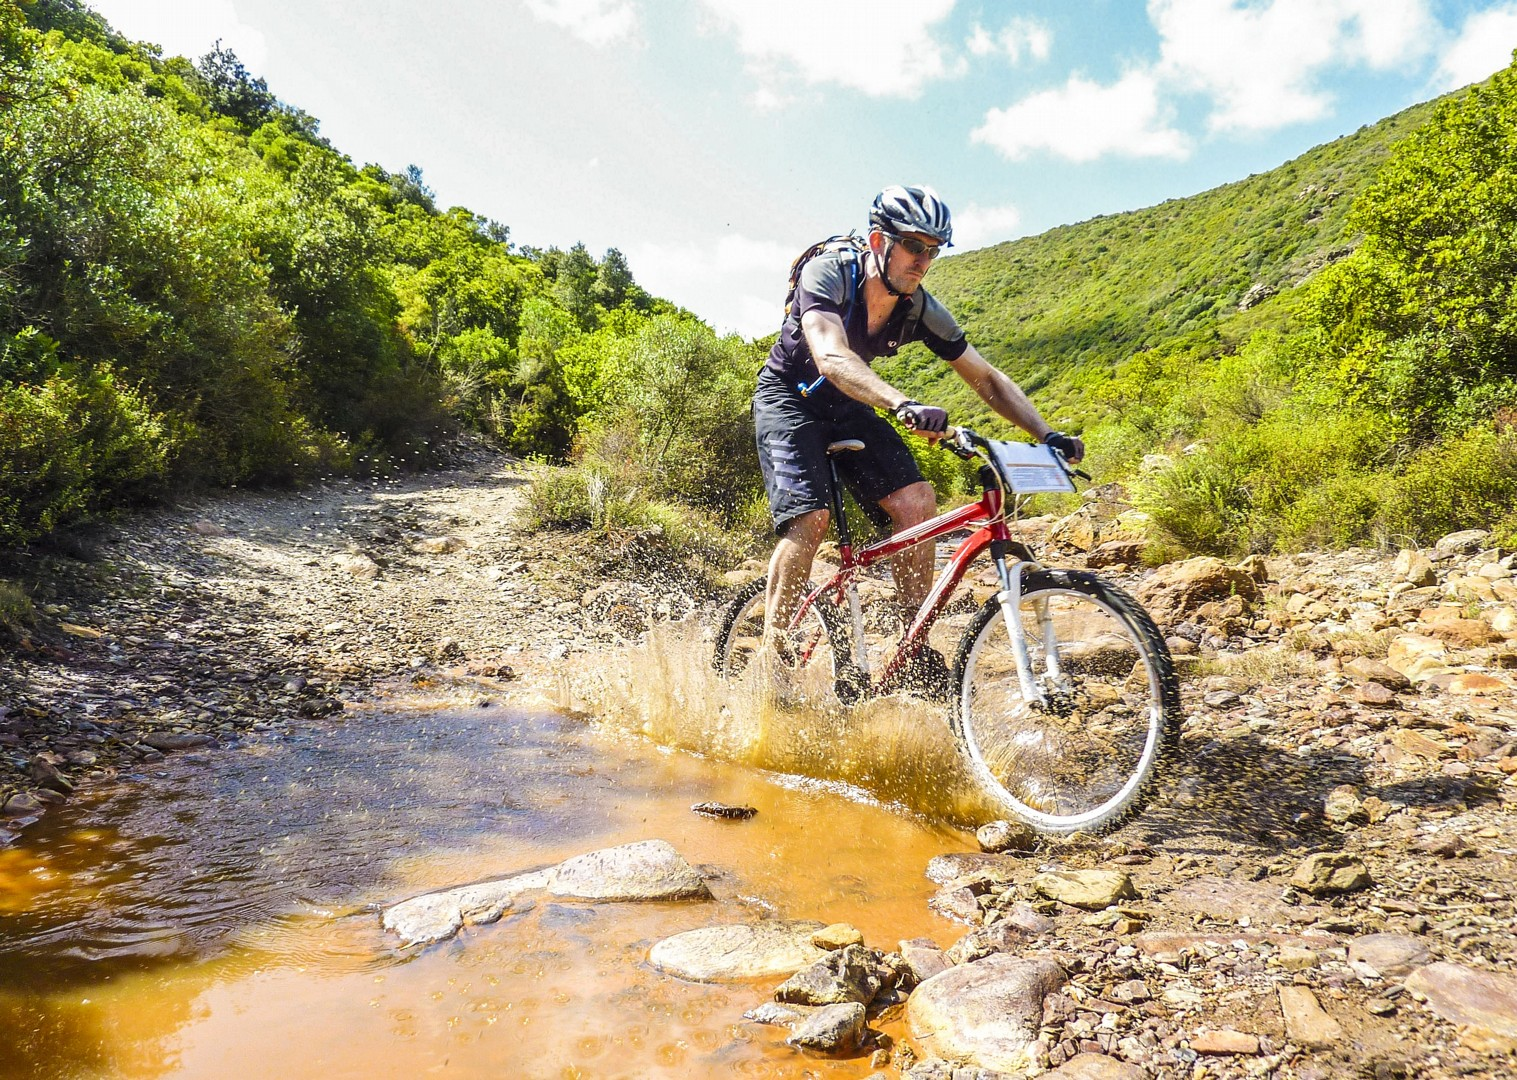 offroad-cycling-adventure-mountain-biking-sardinia-italy.jpg - Italy - Sardinia - Coast to Coast - Self-Guided Mountain Bike Holiday - Mountain Biking